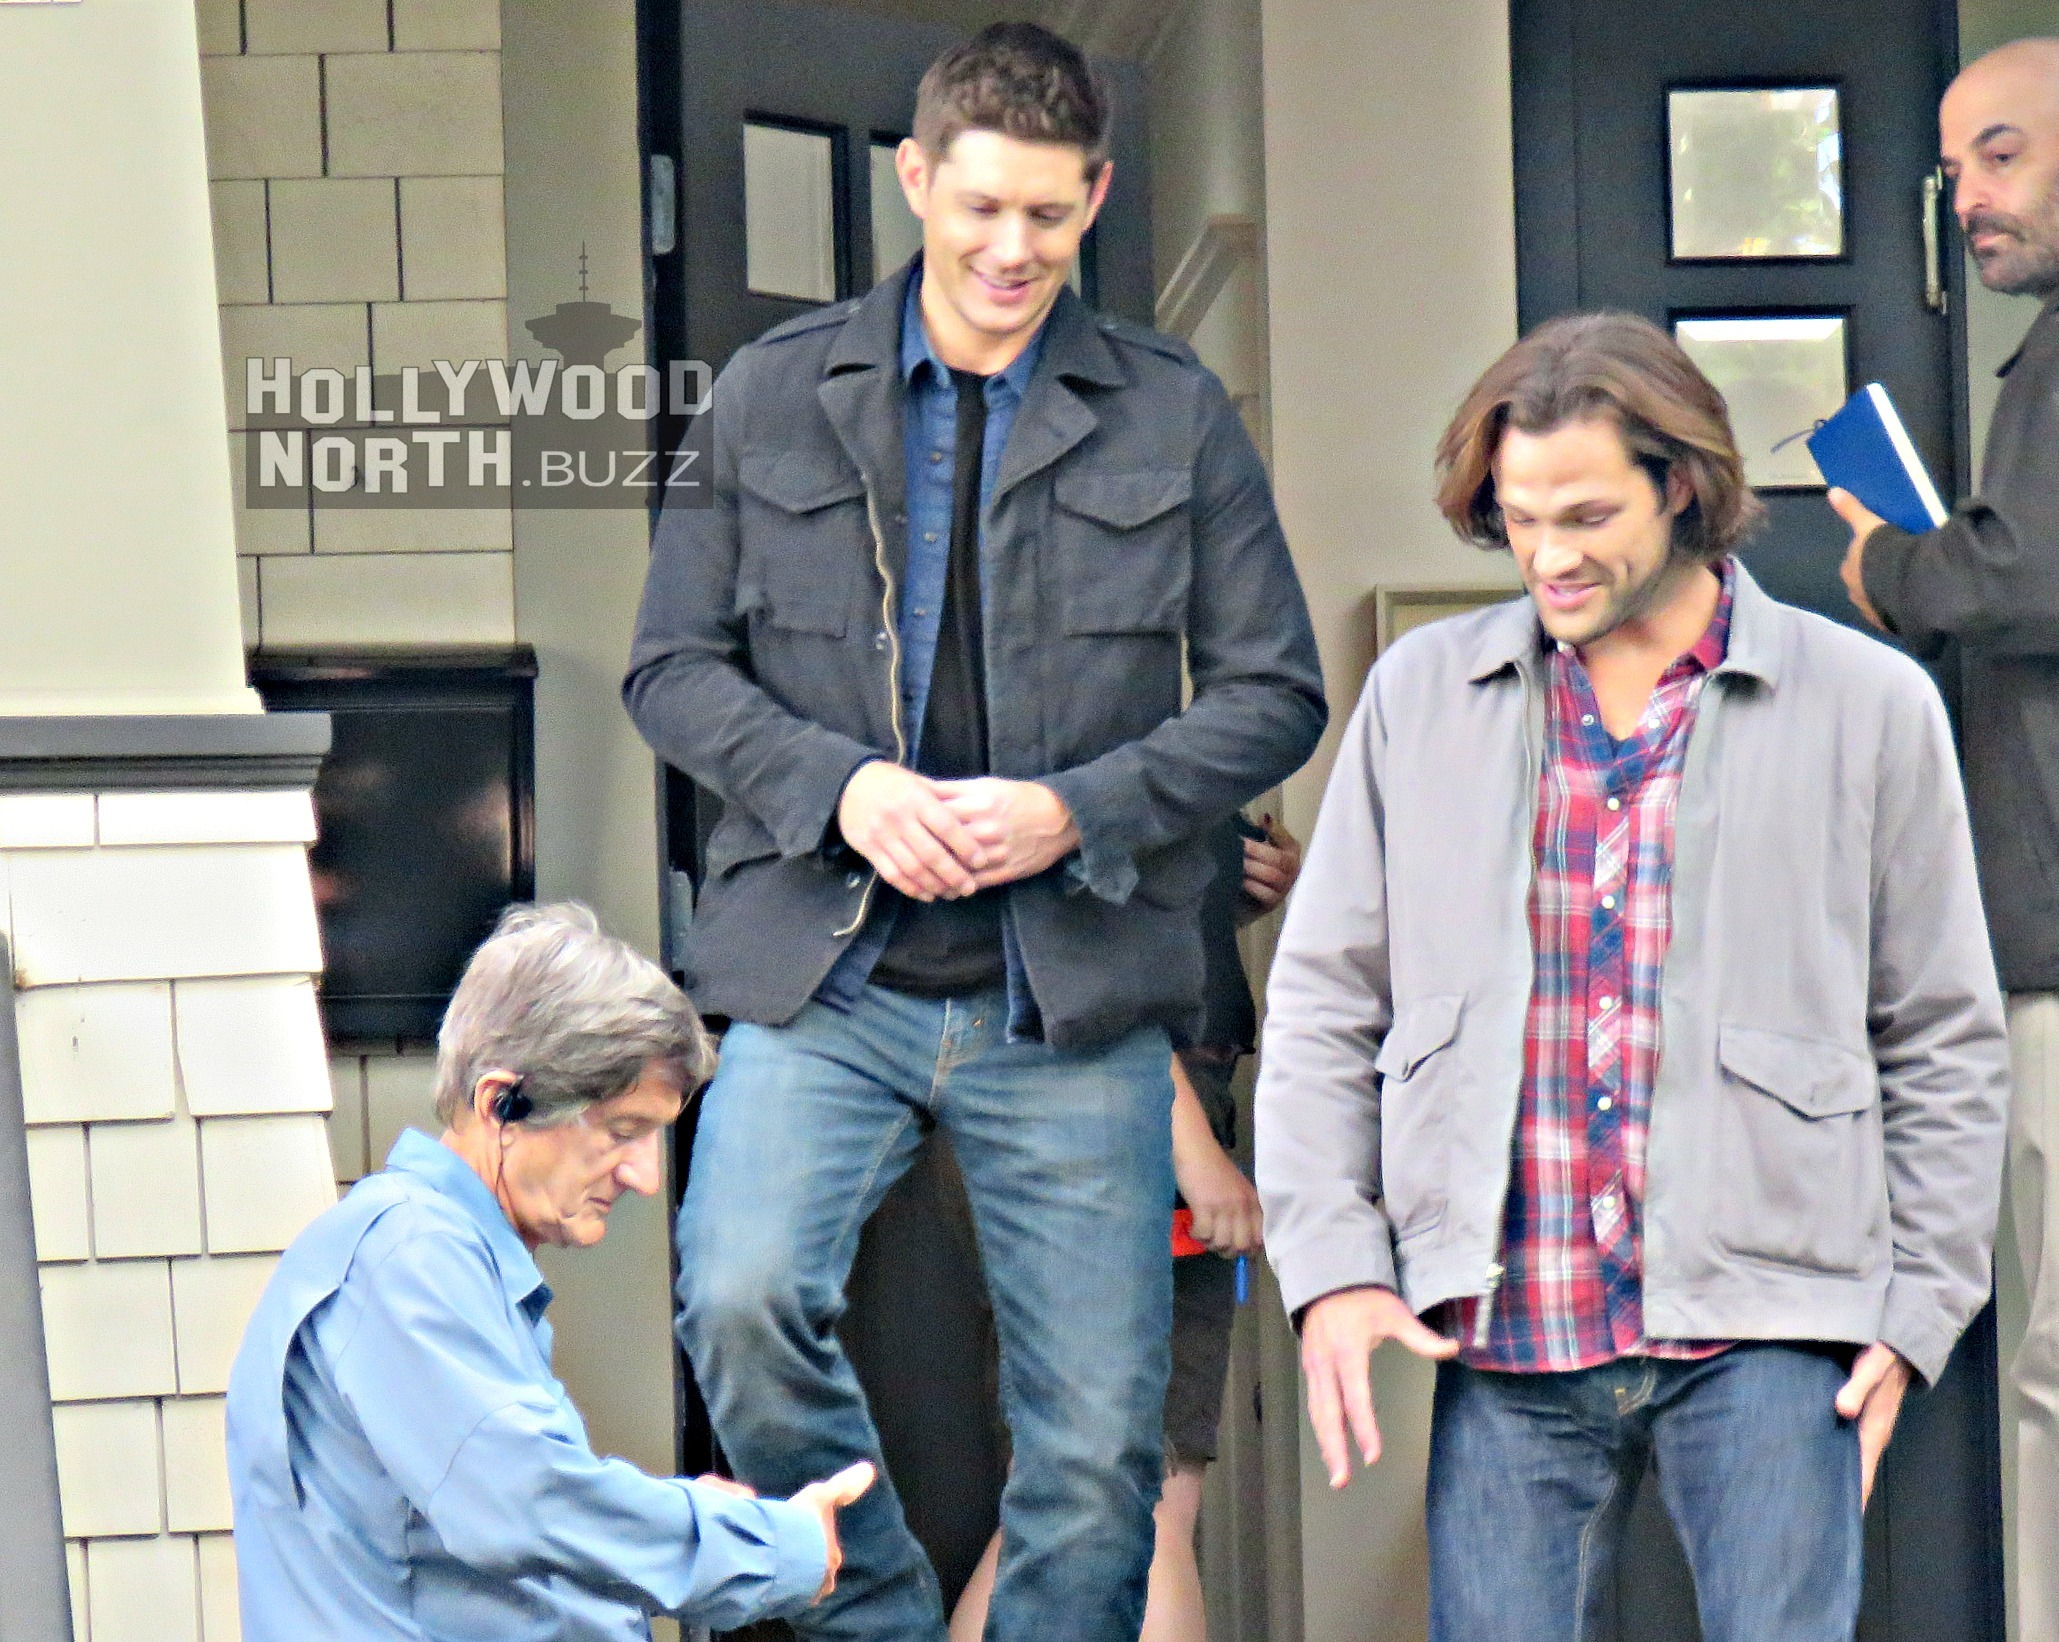 https://i2.wp.com/yvrshoots.com/wp-content/uploads/2017/08/an-spn-set13-2.jpg